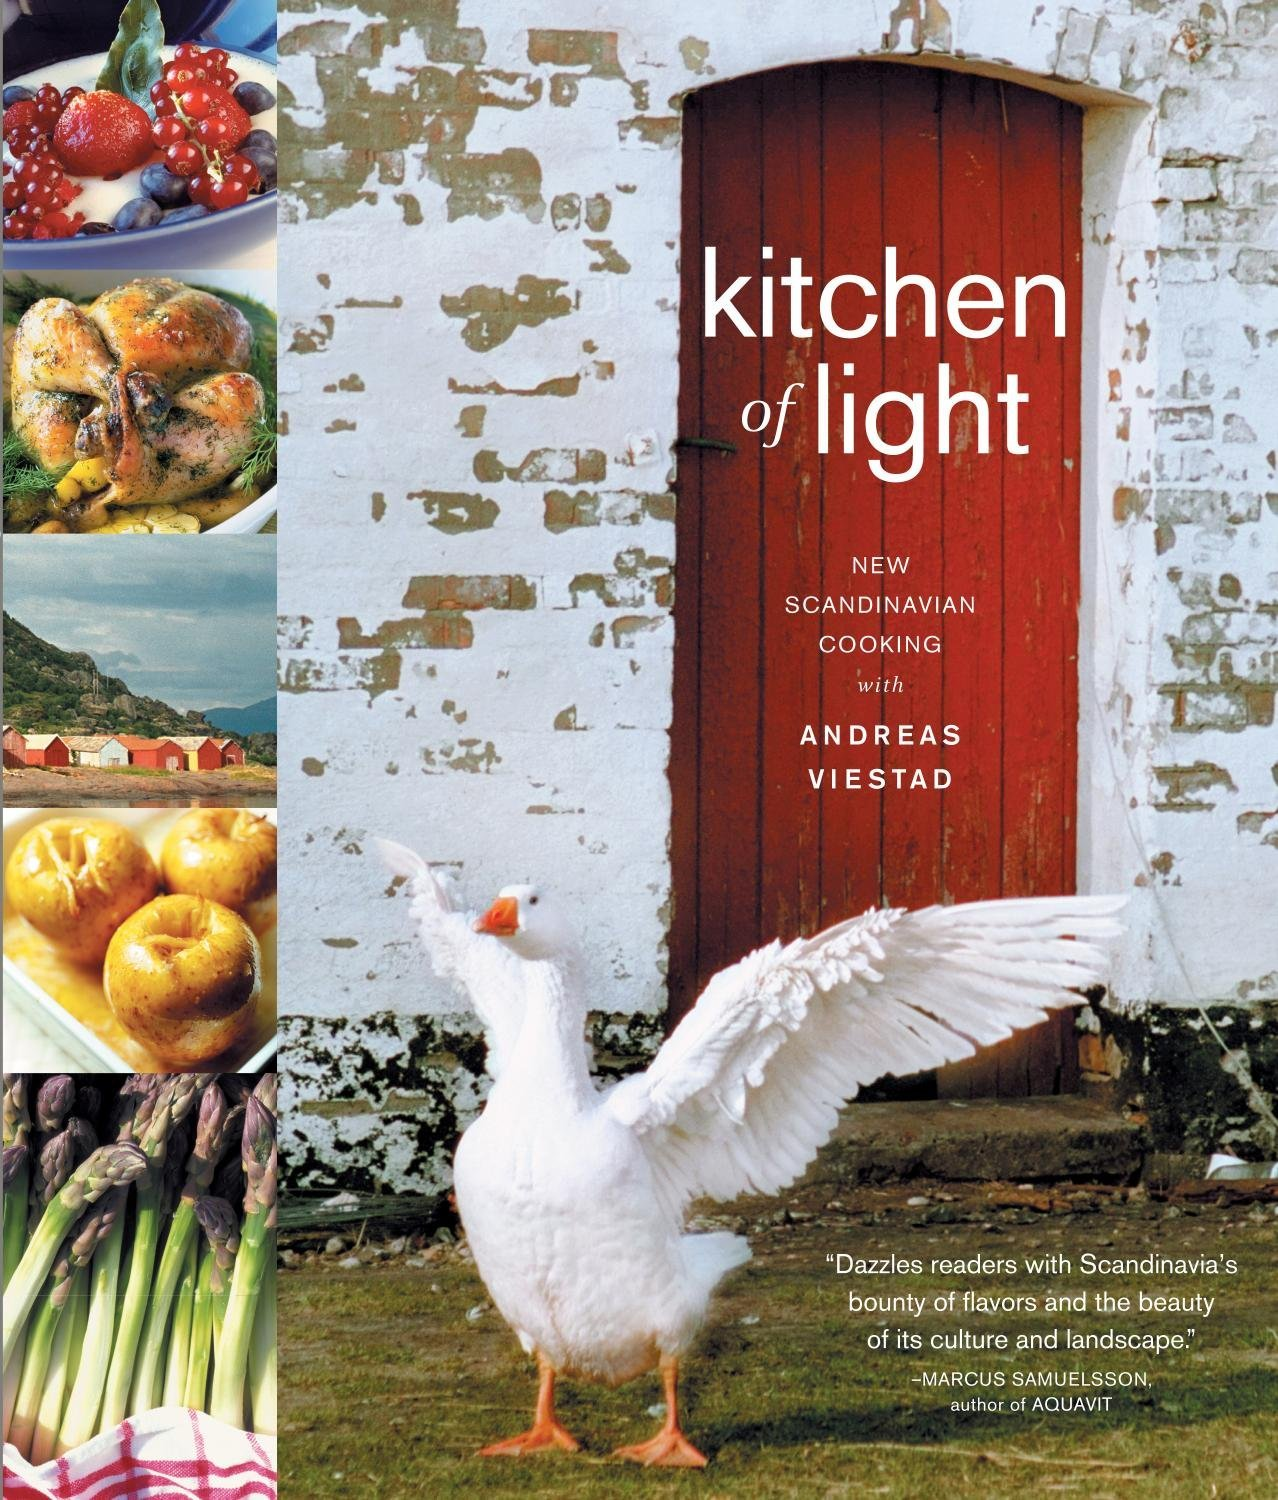 Download kitchen of light the new scandinavian cooking by for Aquavit and the new scandinavian cuisine